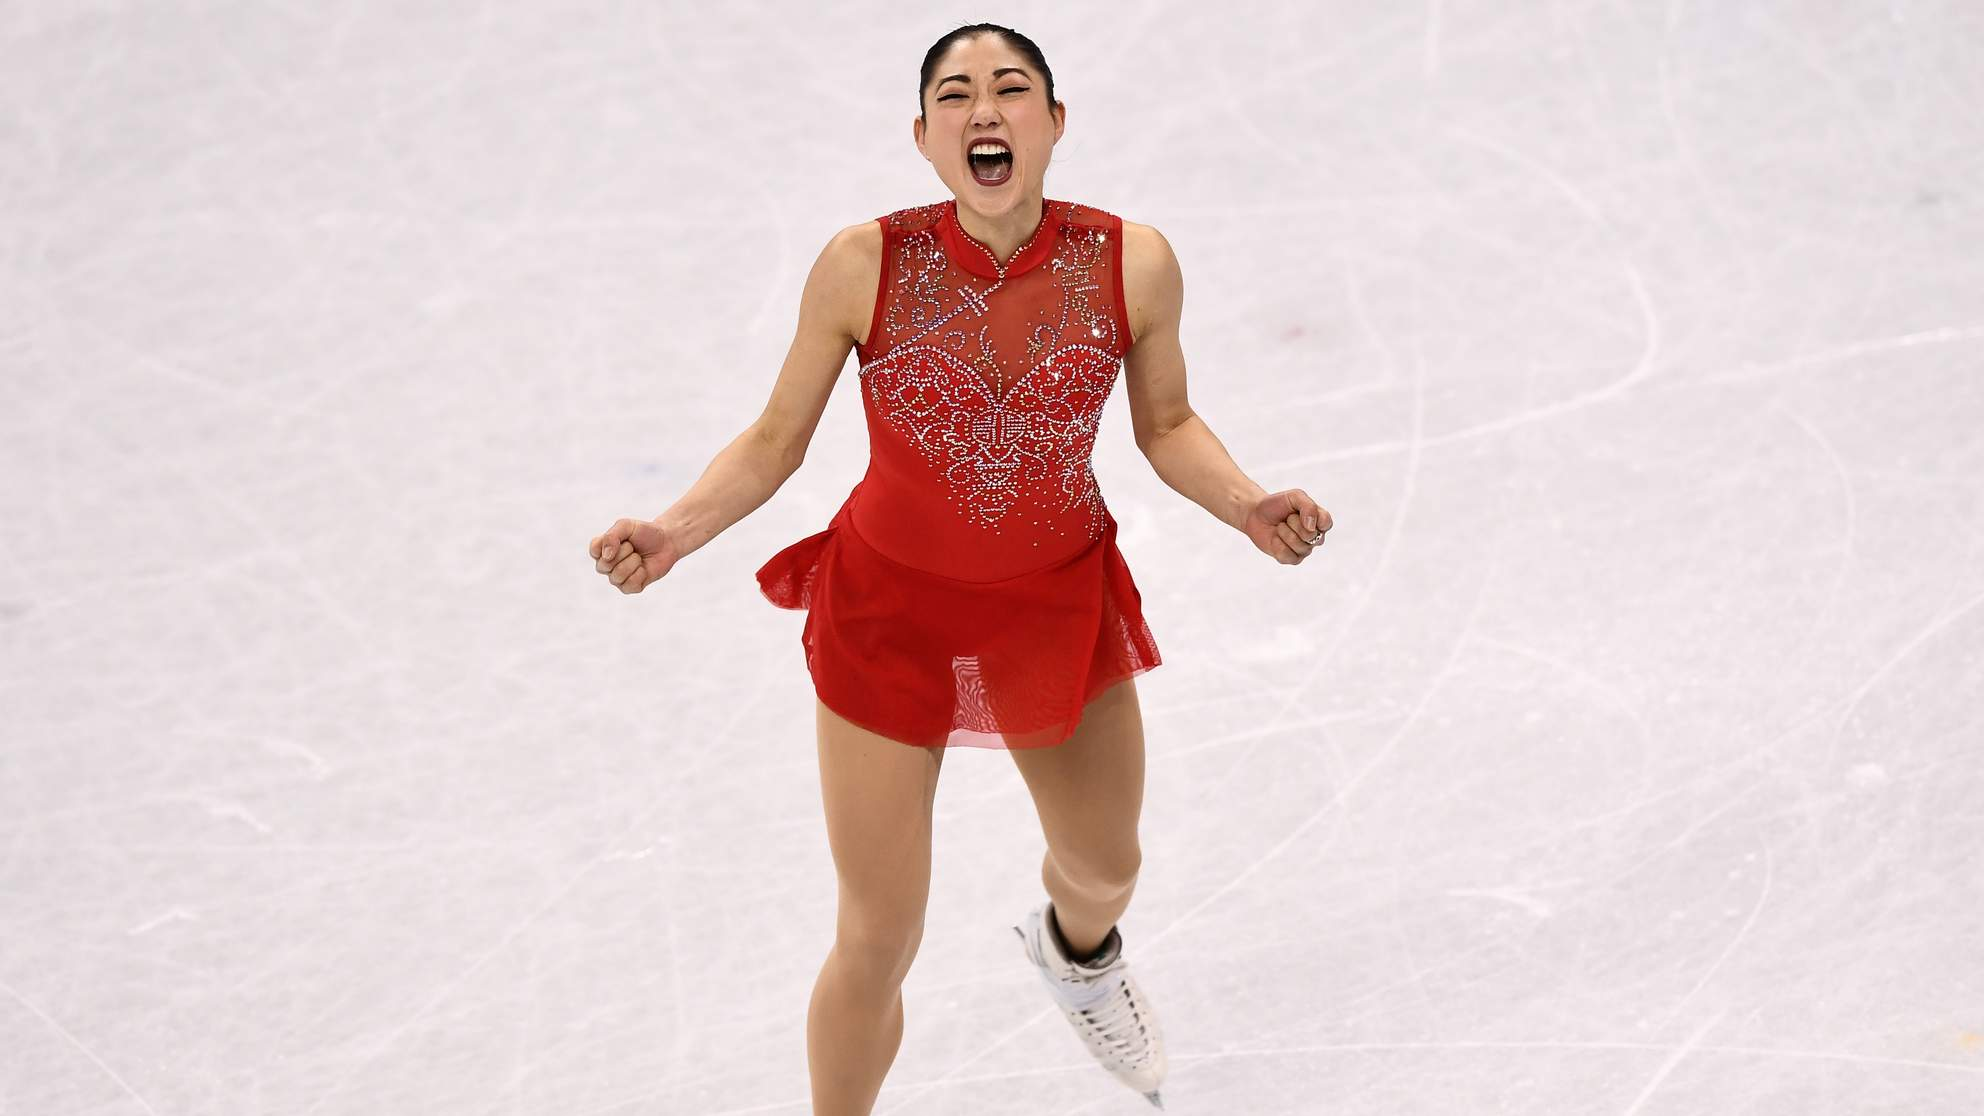 Mirai Nagasu Makes History as the First American Woman to Land a Triple Axel at the Olympics